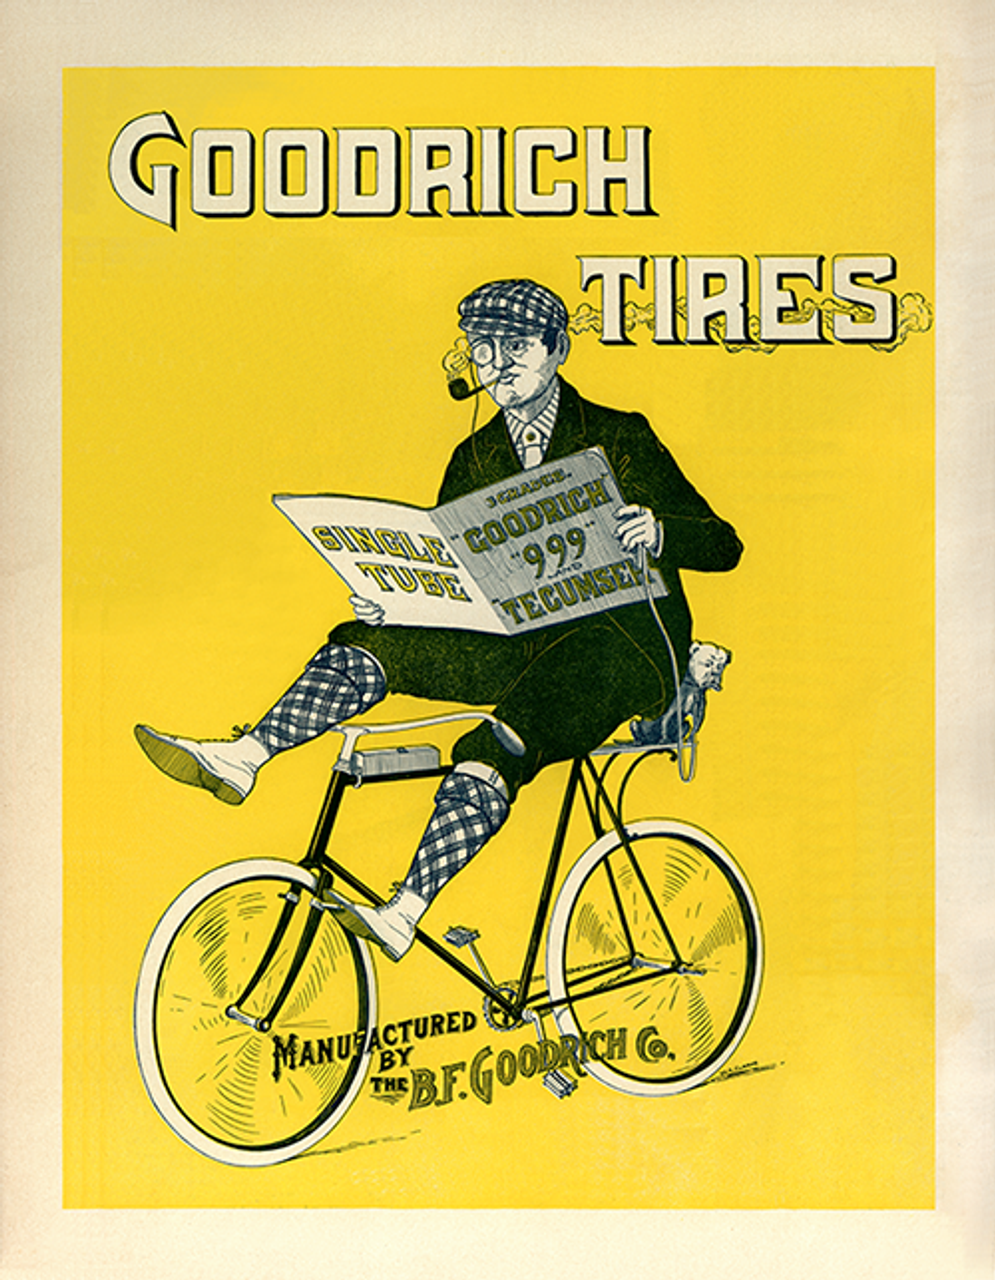 Goodrich Tires Bicycle Poster